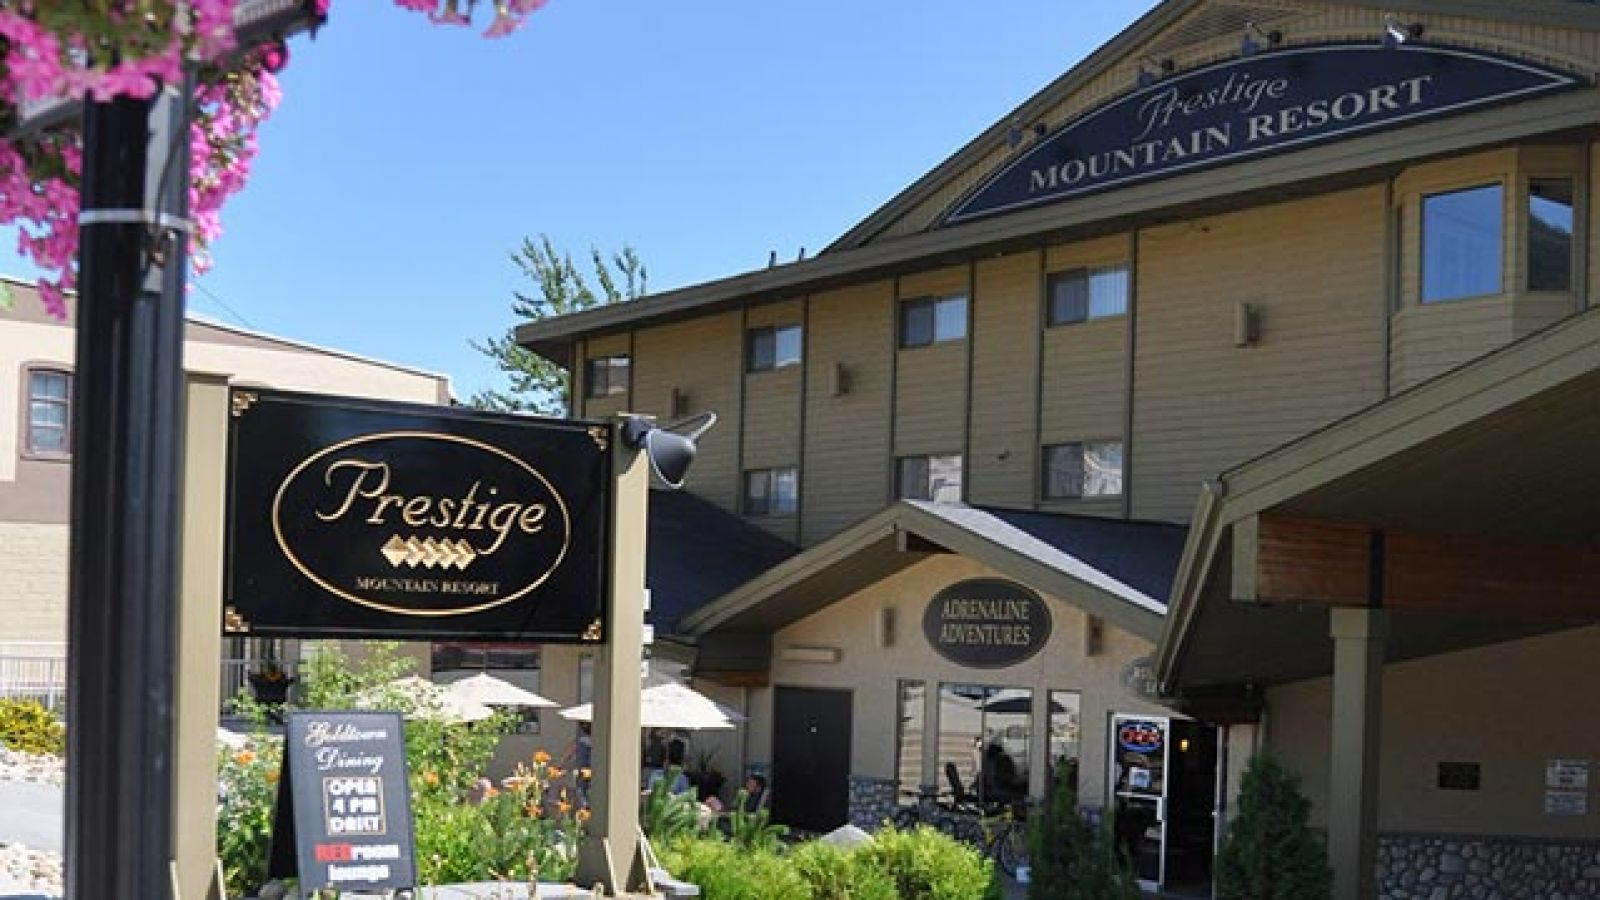 Prestige Mountain Resort - downtown Rossland.